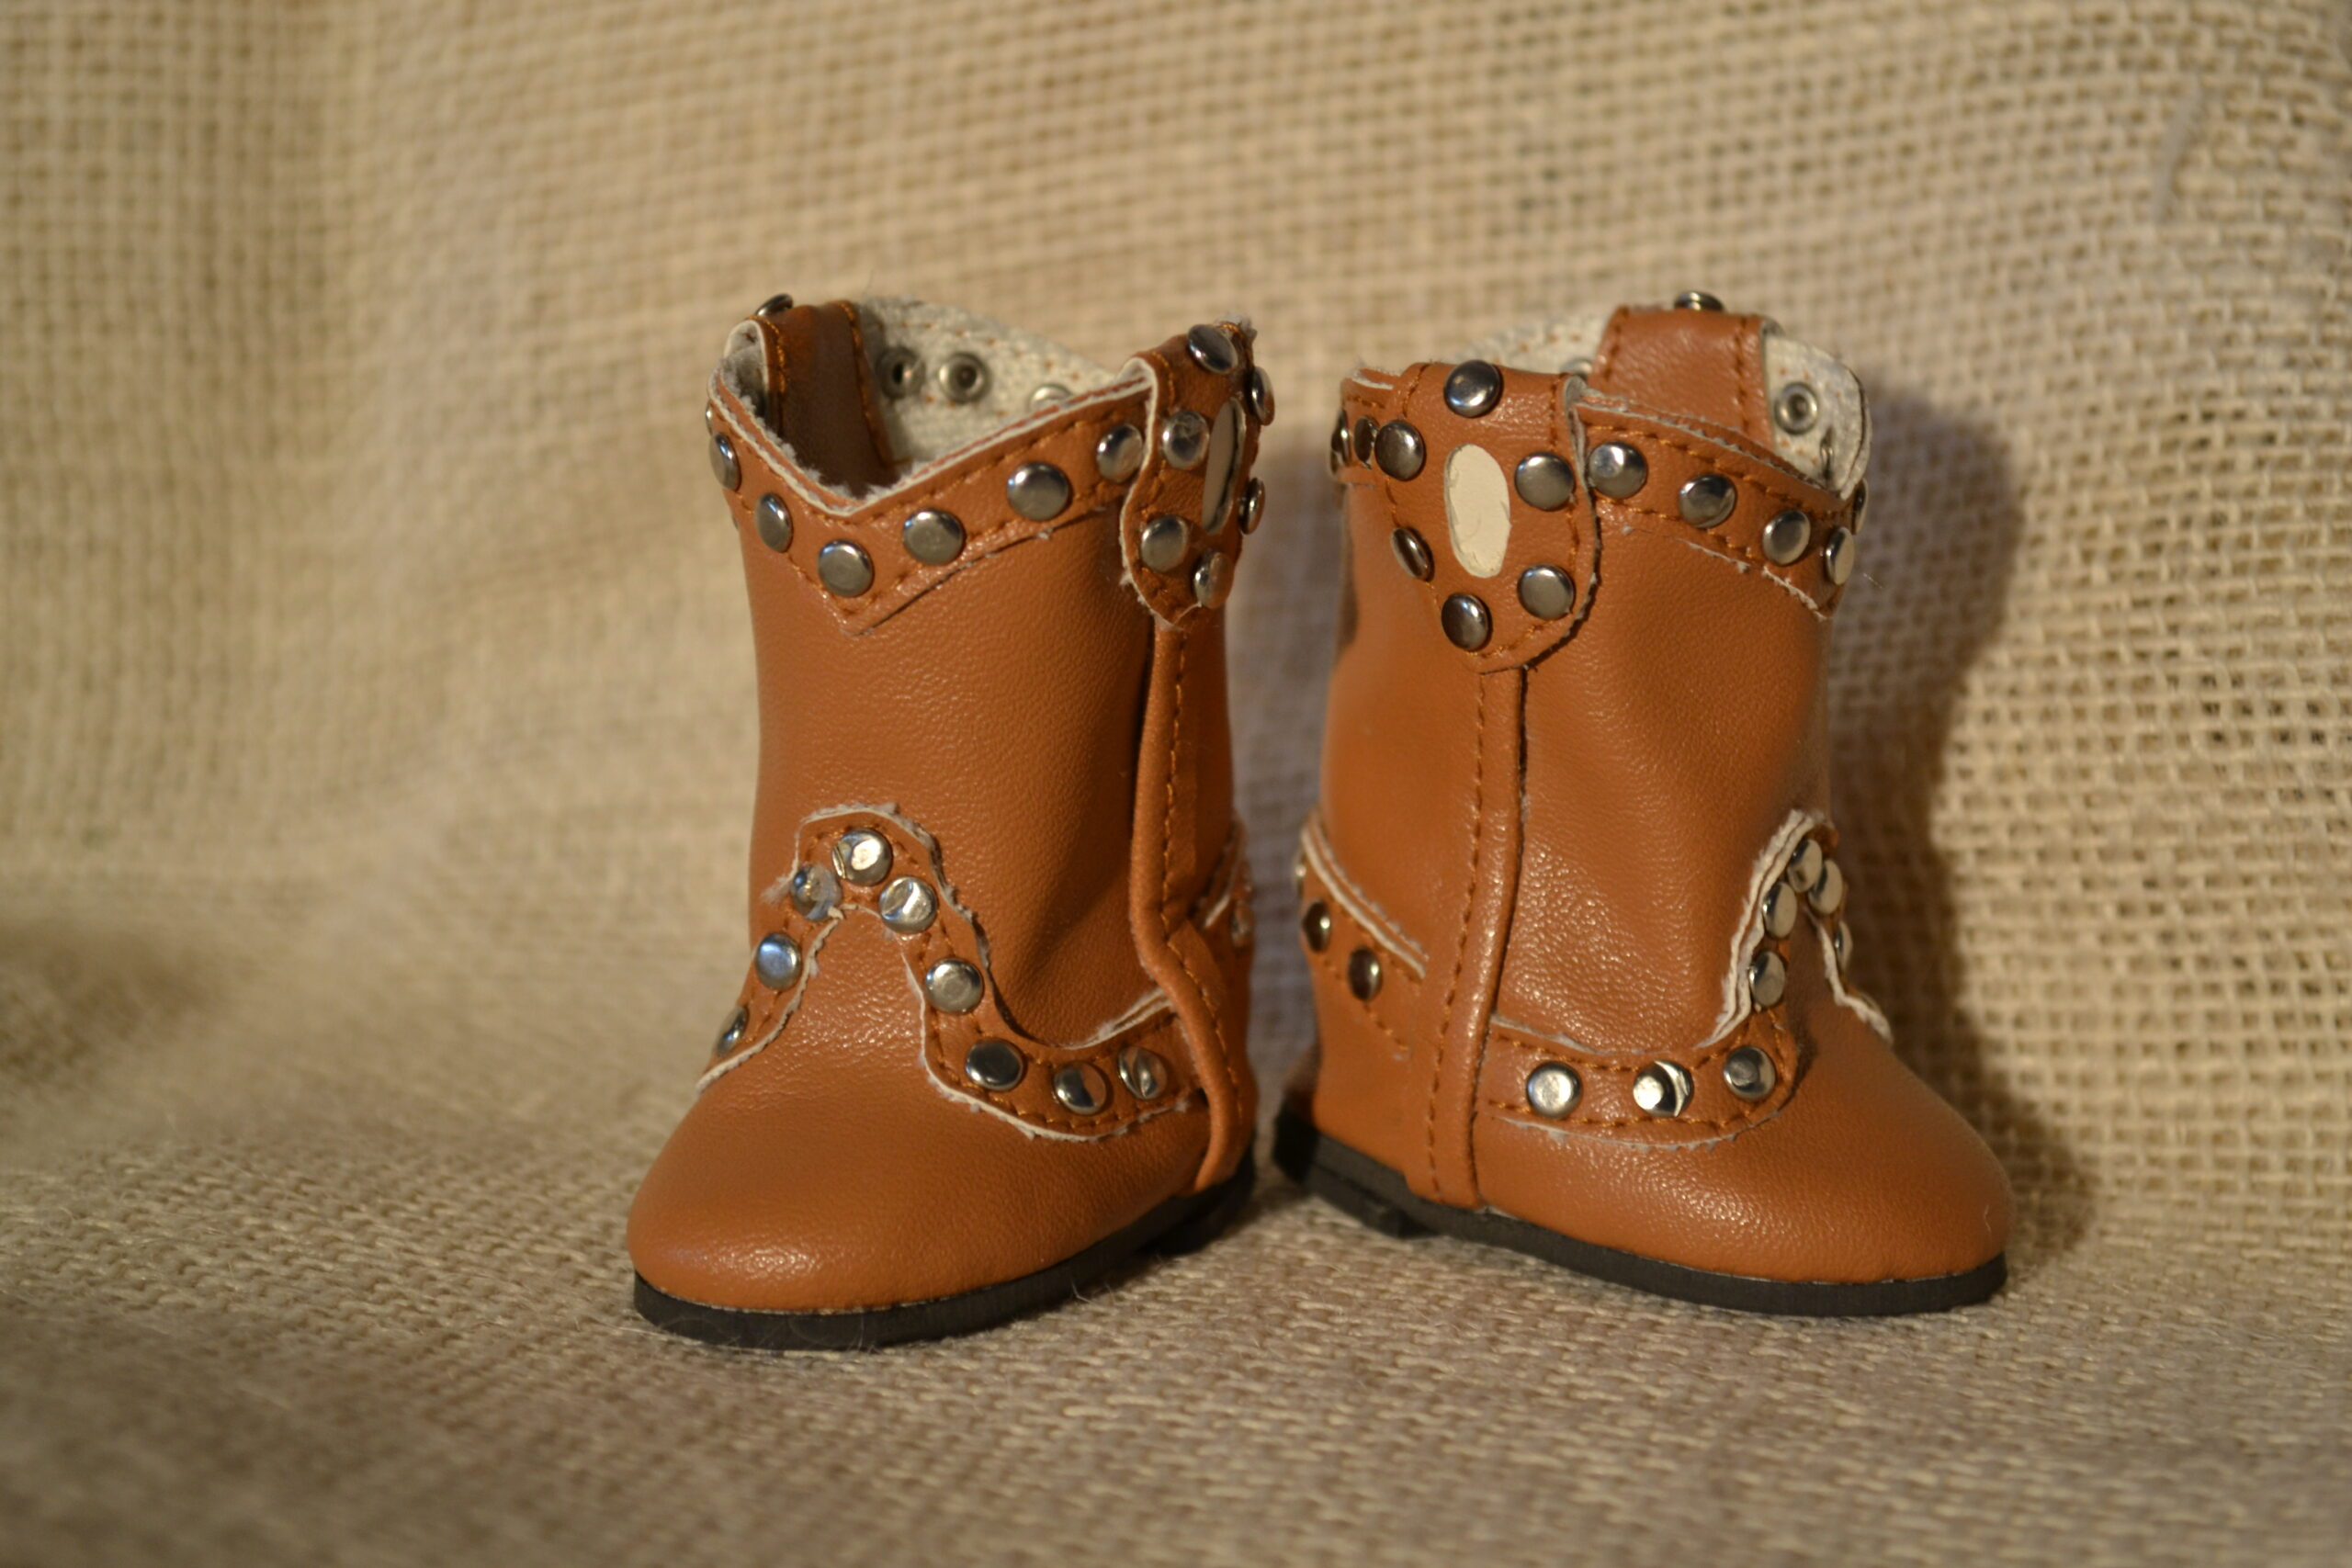 Wellie Wisher Tan Western Boots